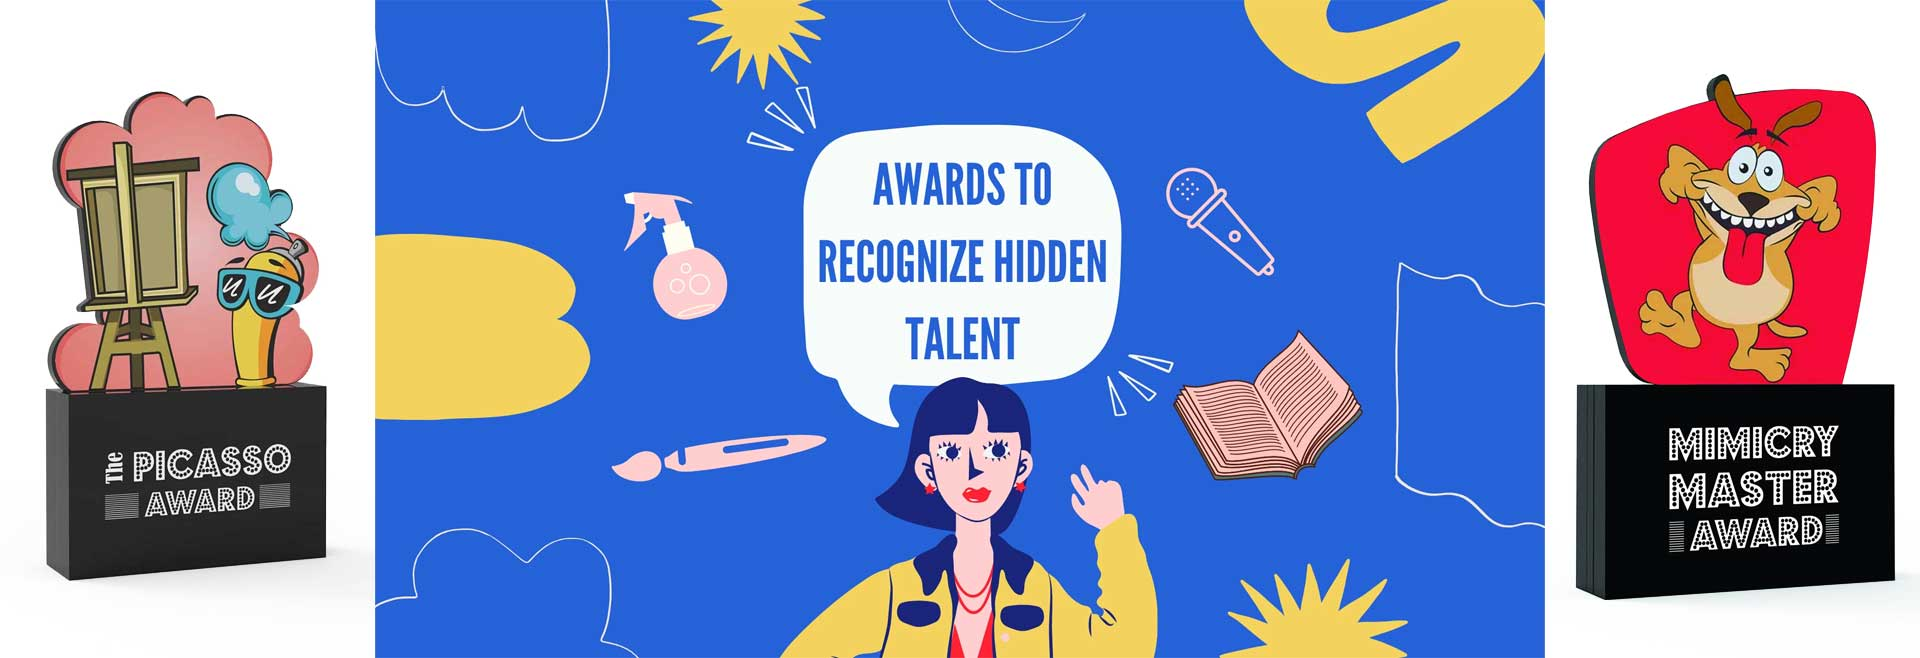 Awards to Recognize Hidden Talent